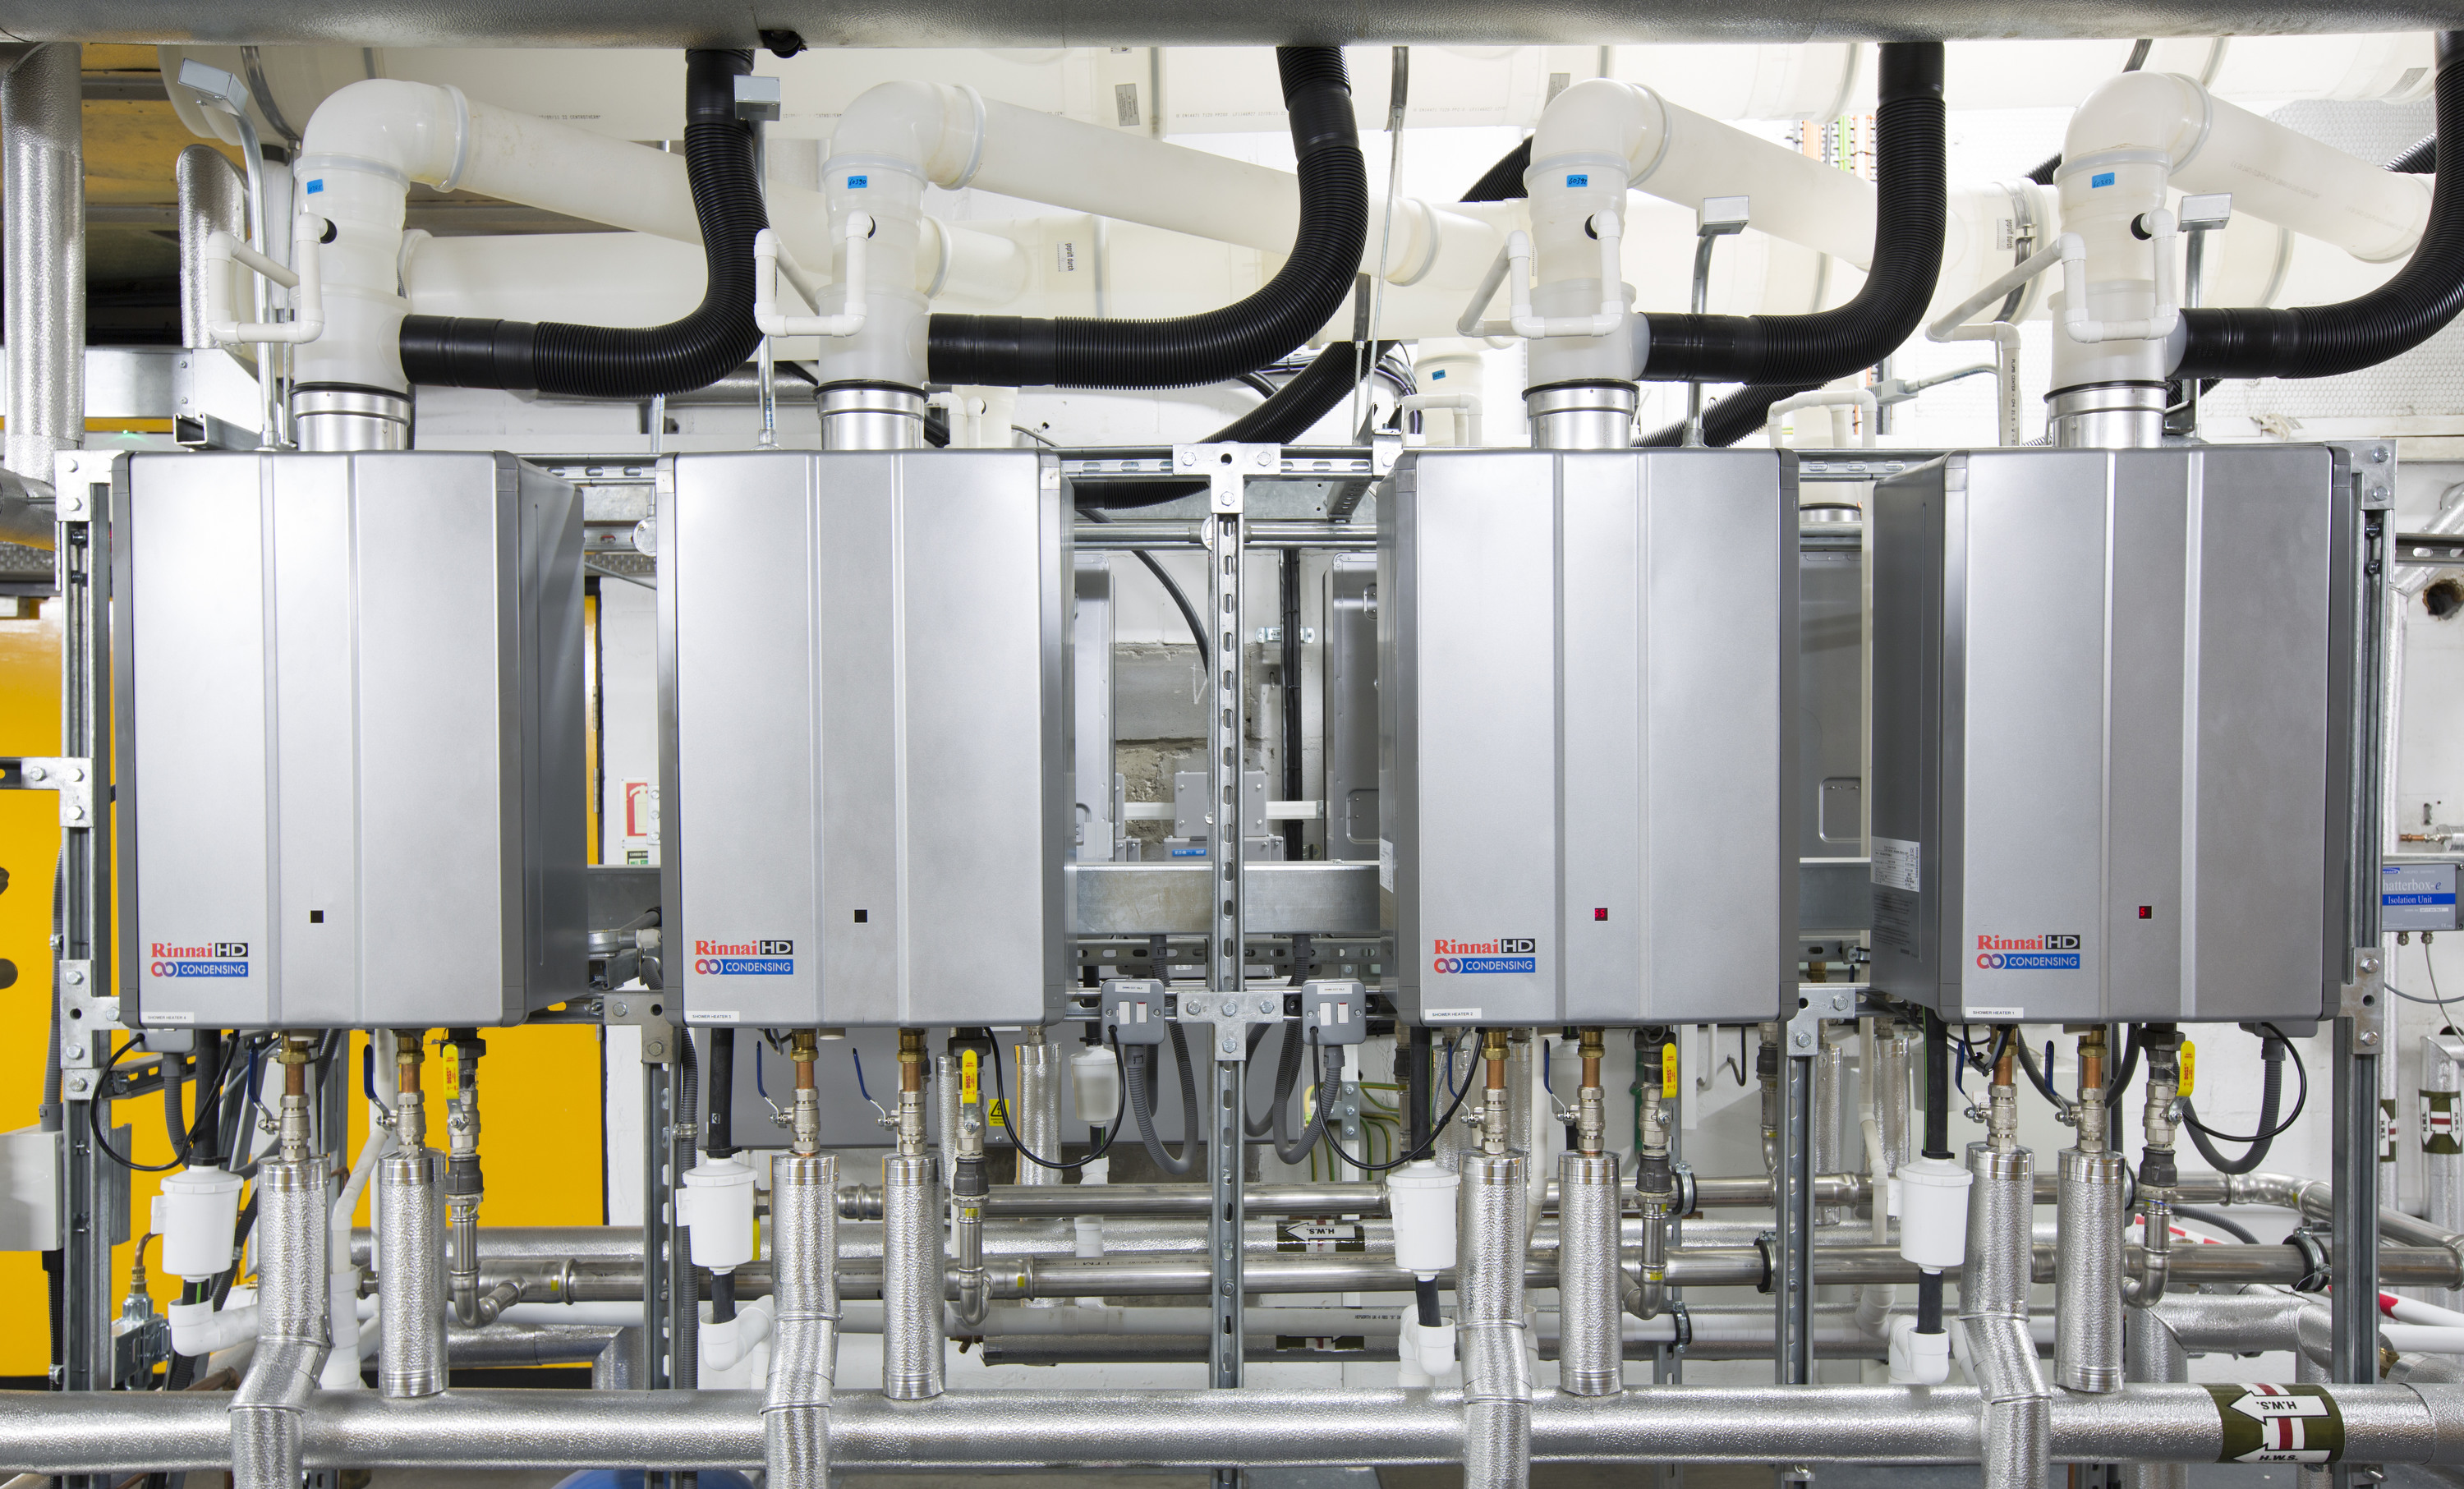 Rinnai Offers End Users An Infinity Of Reliability On Hot